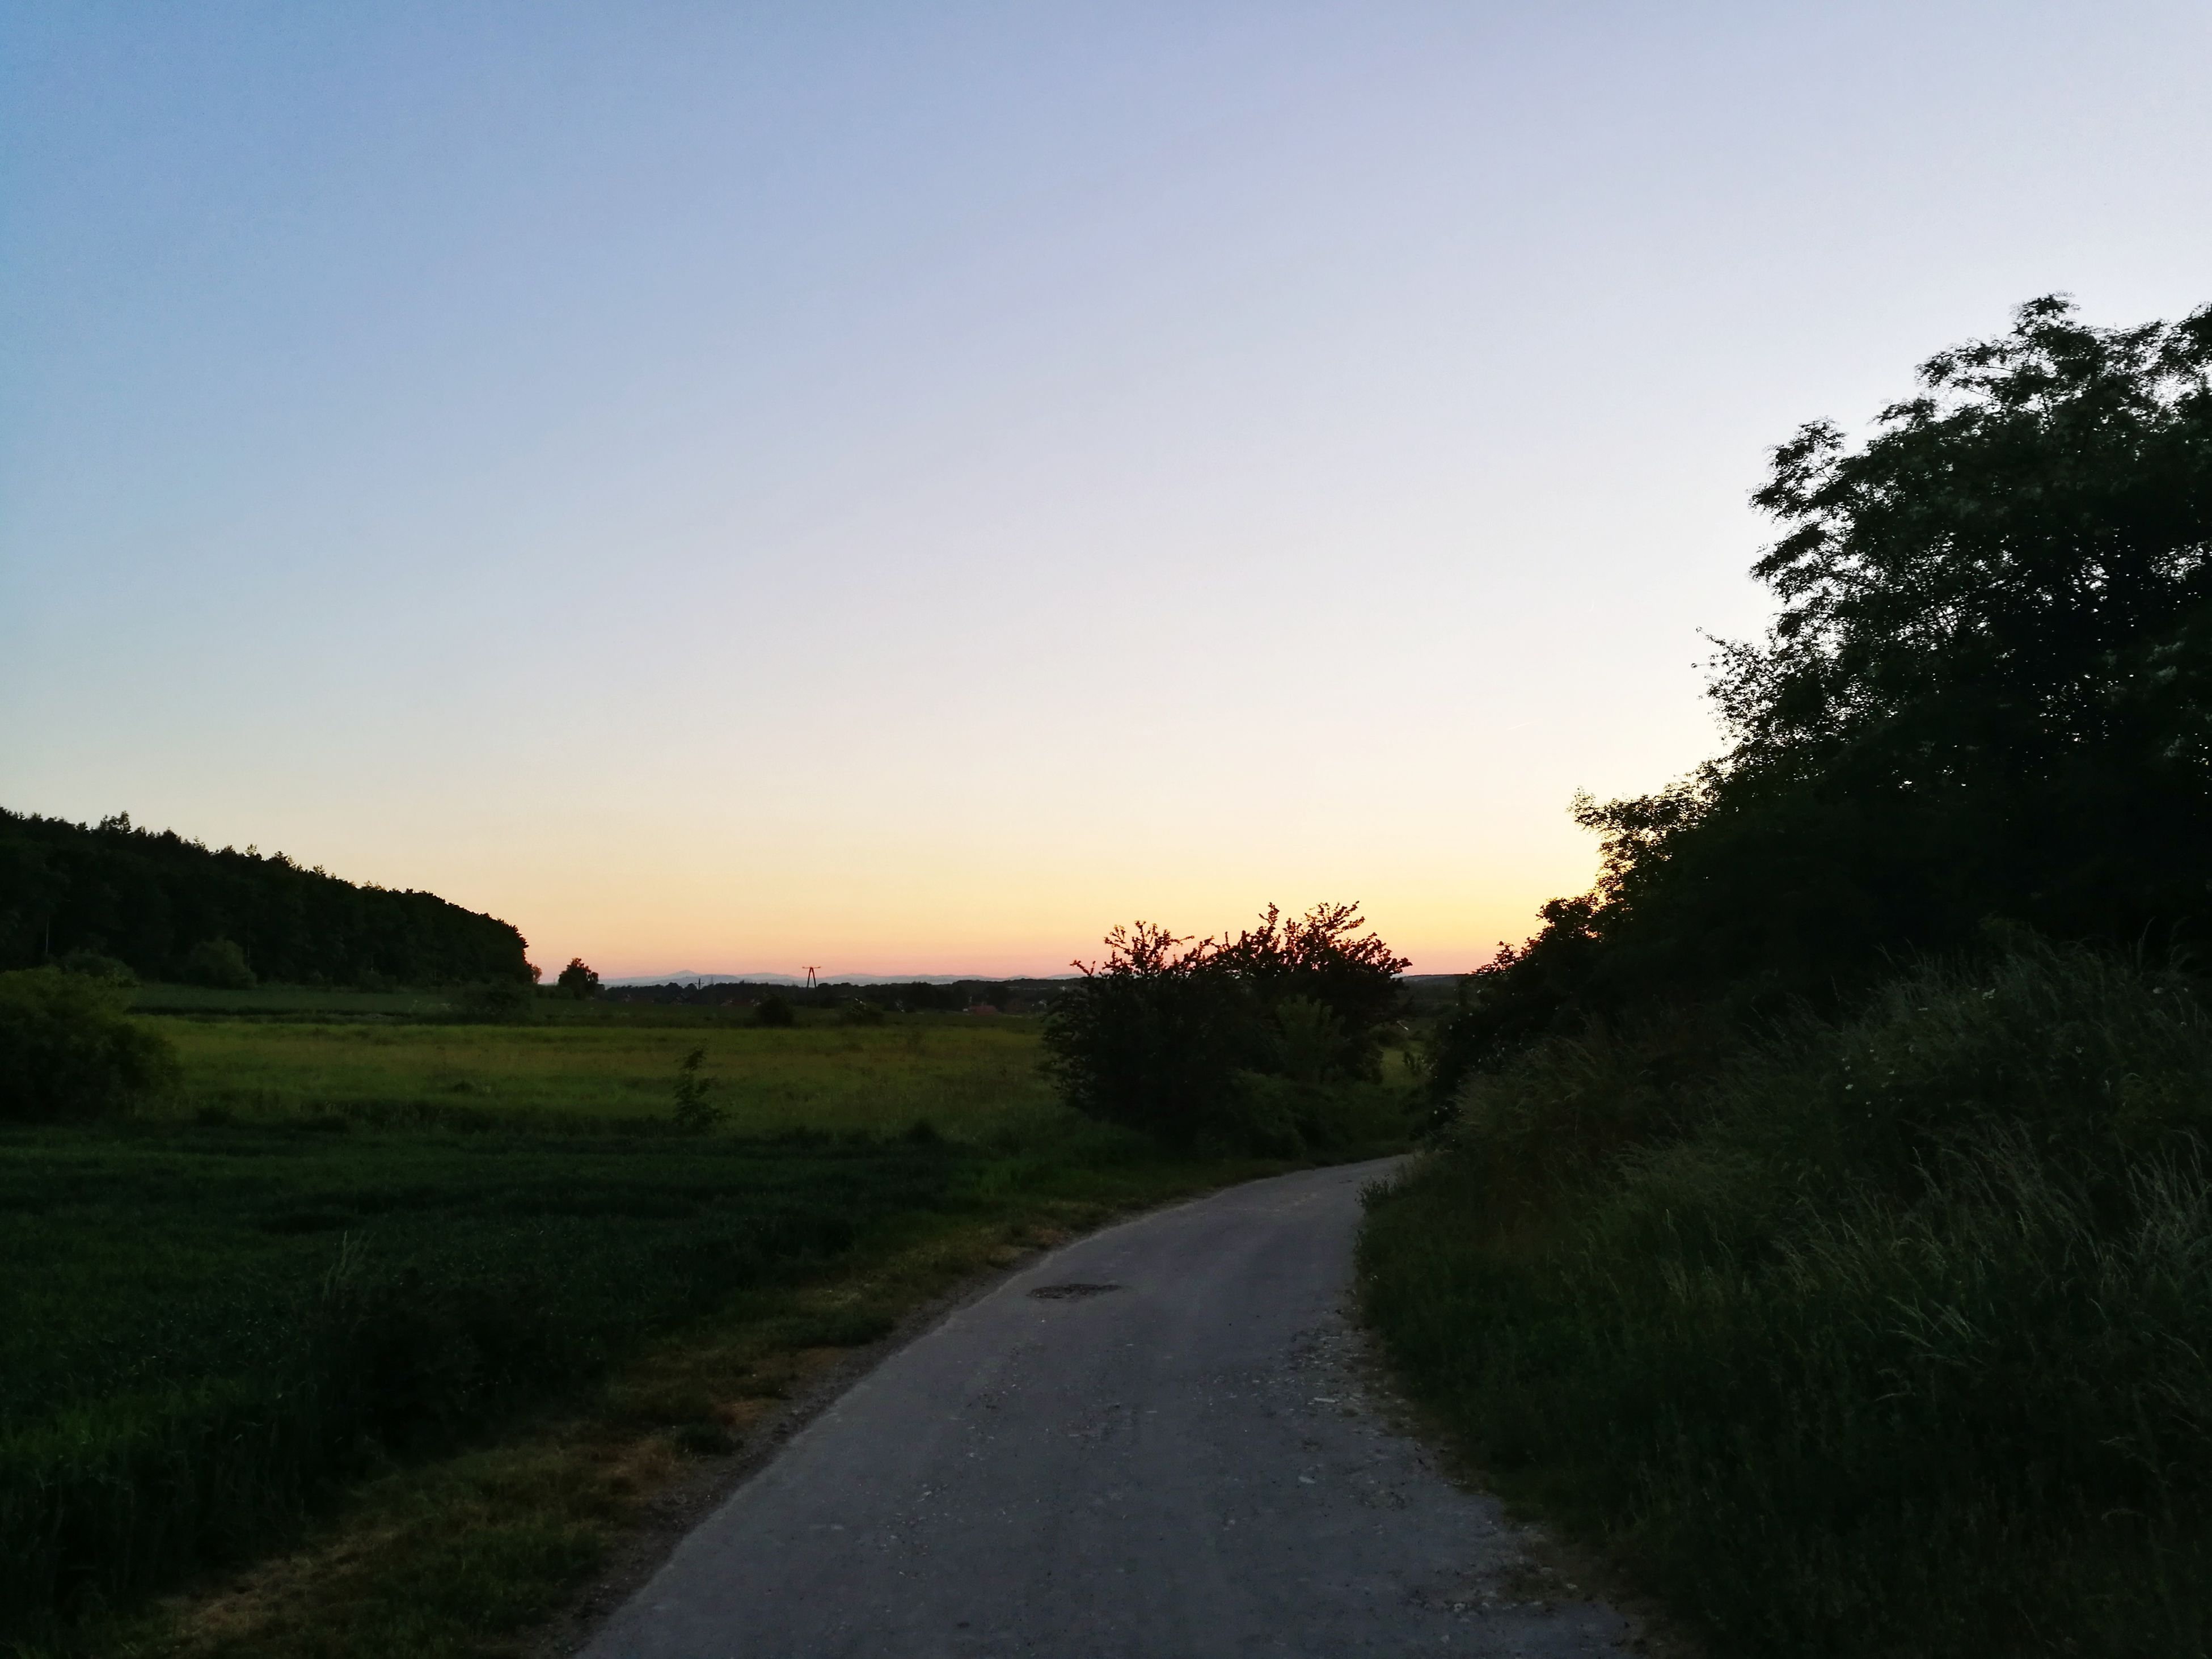 sunset, the way forward, tree, nature, road, clear sky, no people, tranquil scene, scenics, landscape, tranquility, field, beauty in nature, silhouette, sky, outdoors, grass, growth, plant, rural scene, day